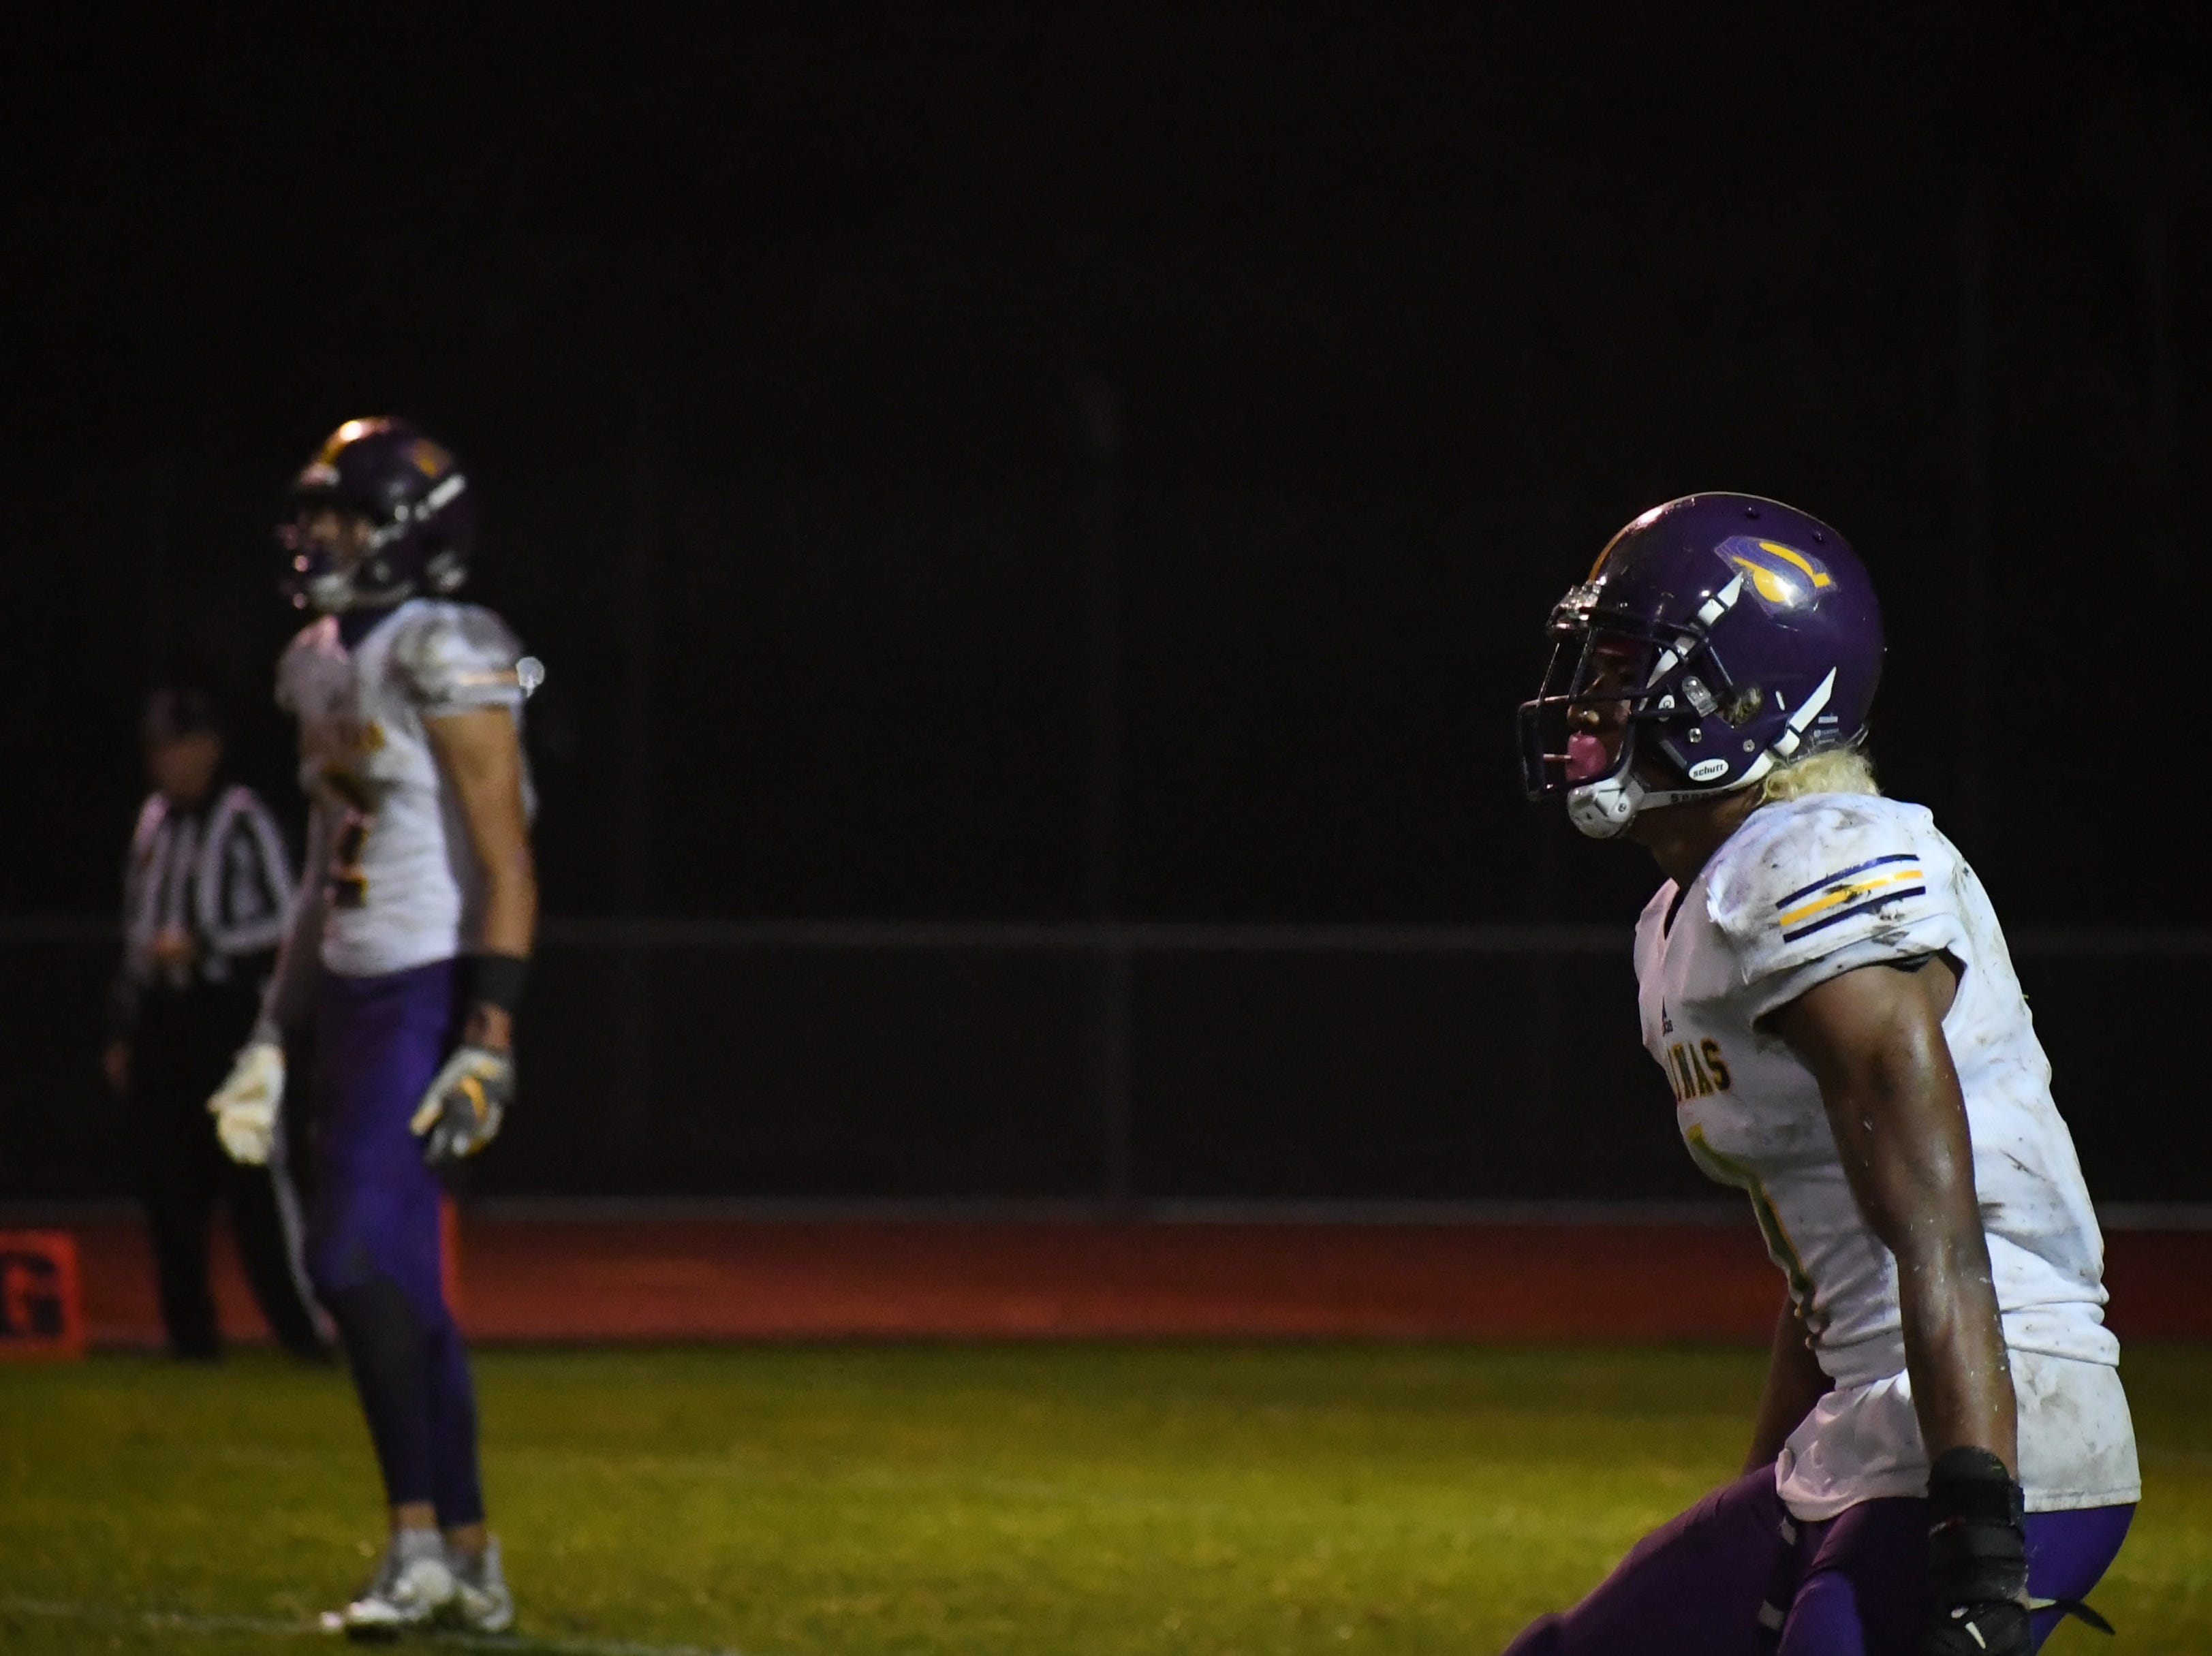 Wide receivers Poe Gaskins (right) and Zachary Robison (left) wait for a kickoff.